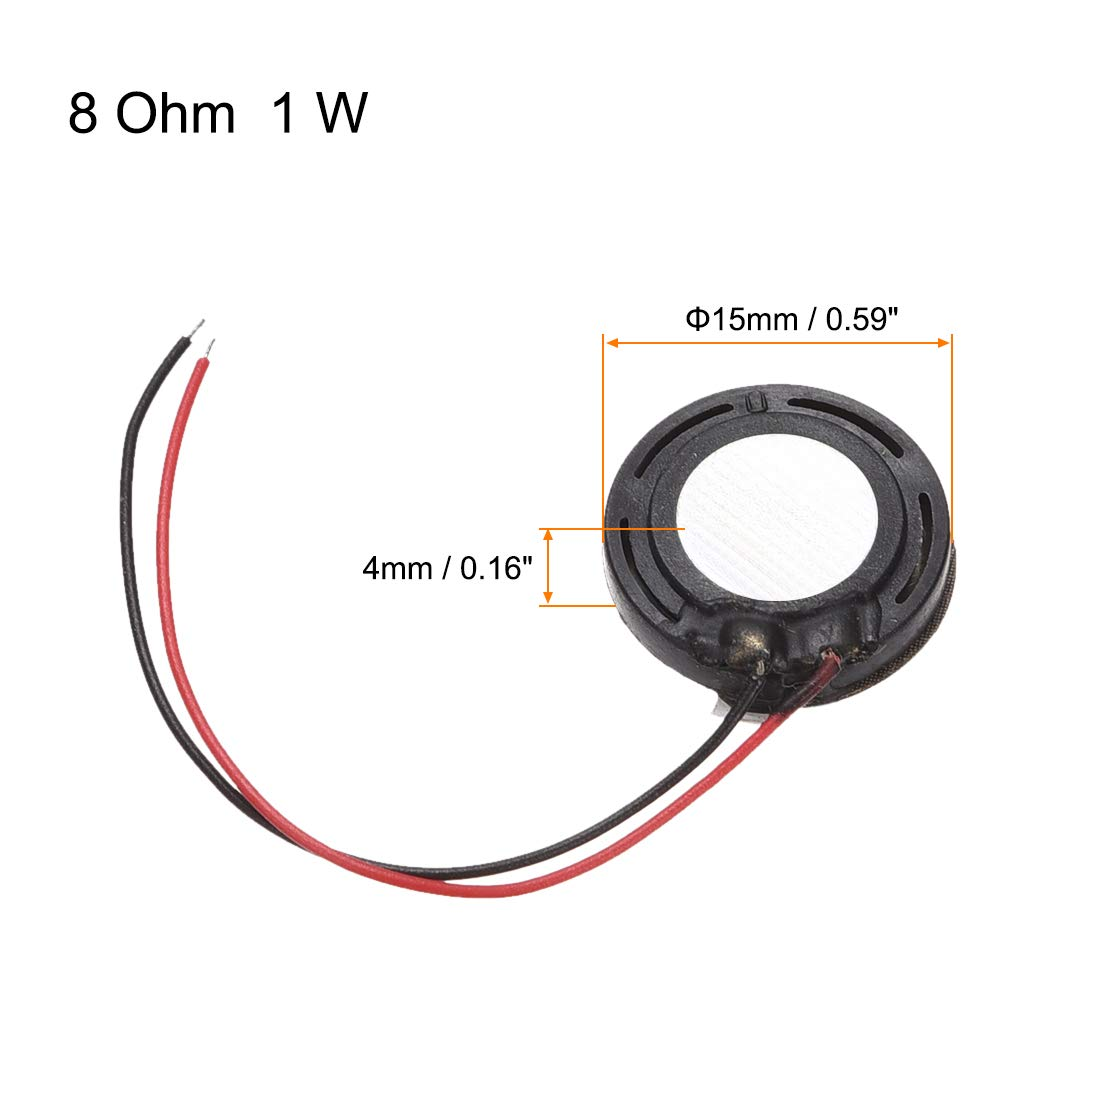 uxcell 1W 8 Ohm Mini DIY Magnetic Speaker Replacement Loudspeaker 15mm for Mobile Phone